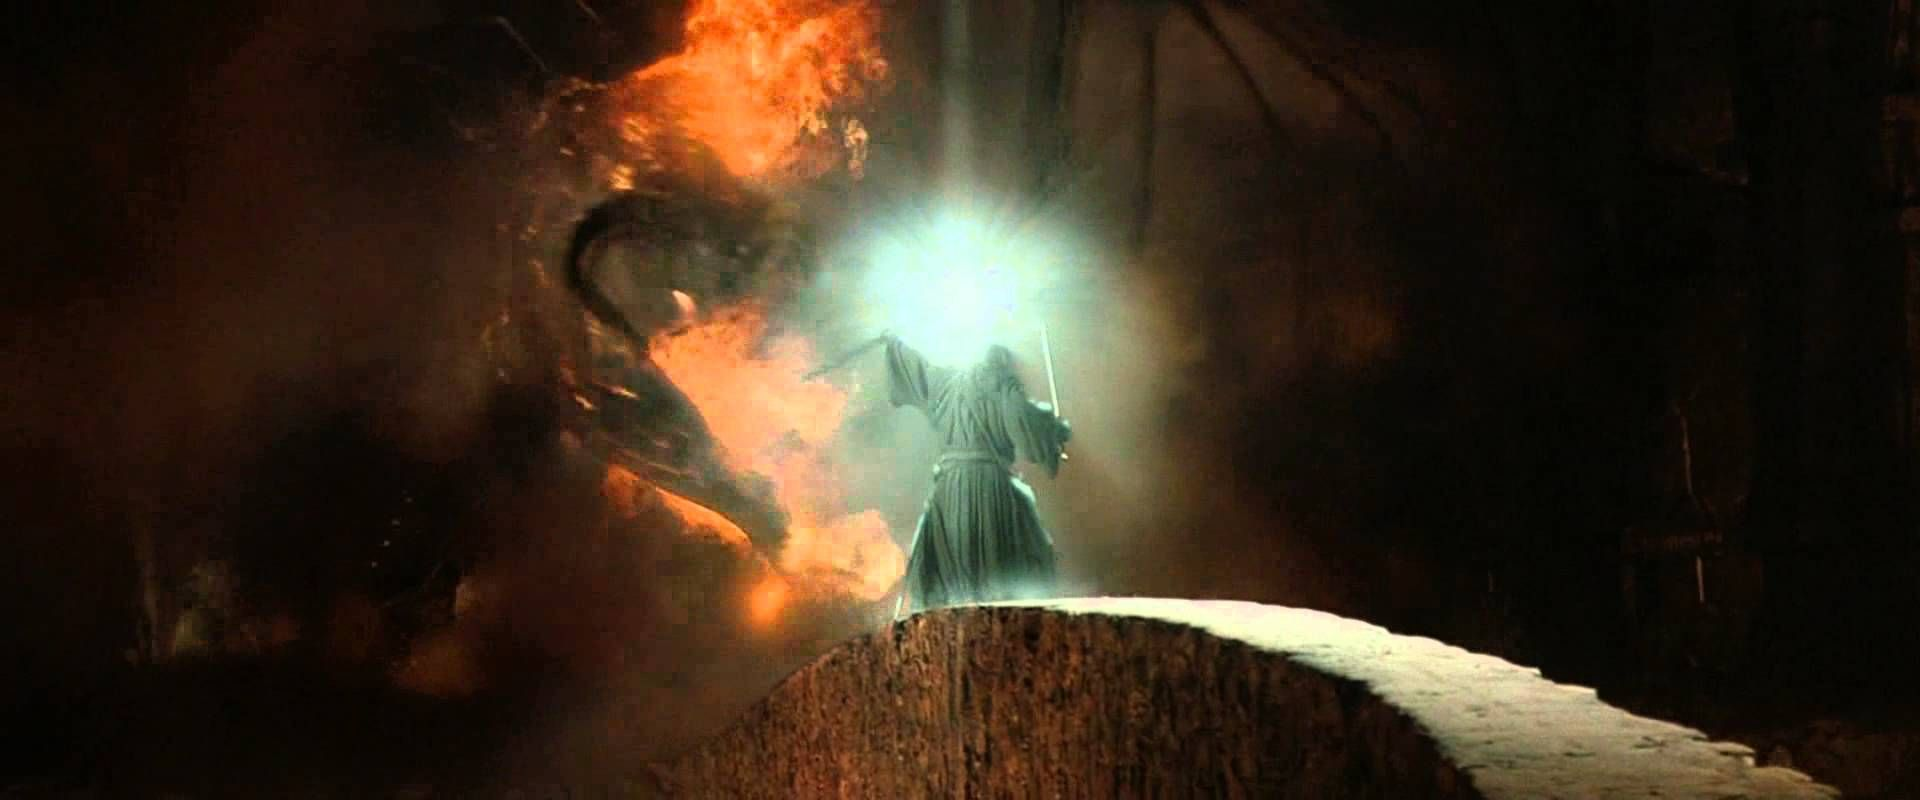 Lord Of The Rings Fellowship Of The Ring Gandalf Vs The Balrog You Shall Not Pass Submoment Lord Of The Rings Fellowship Of The Ring Lotr